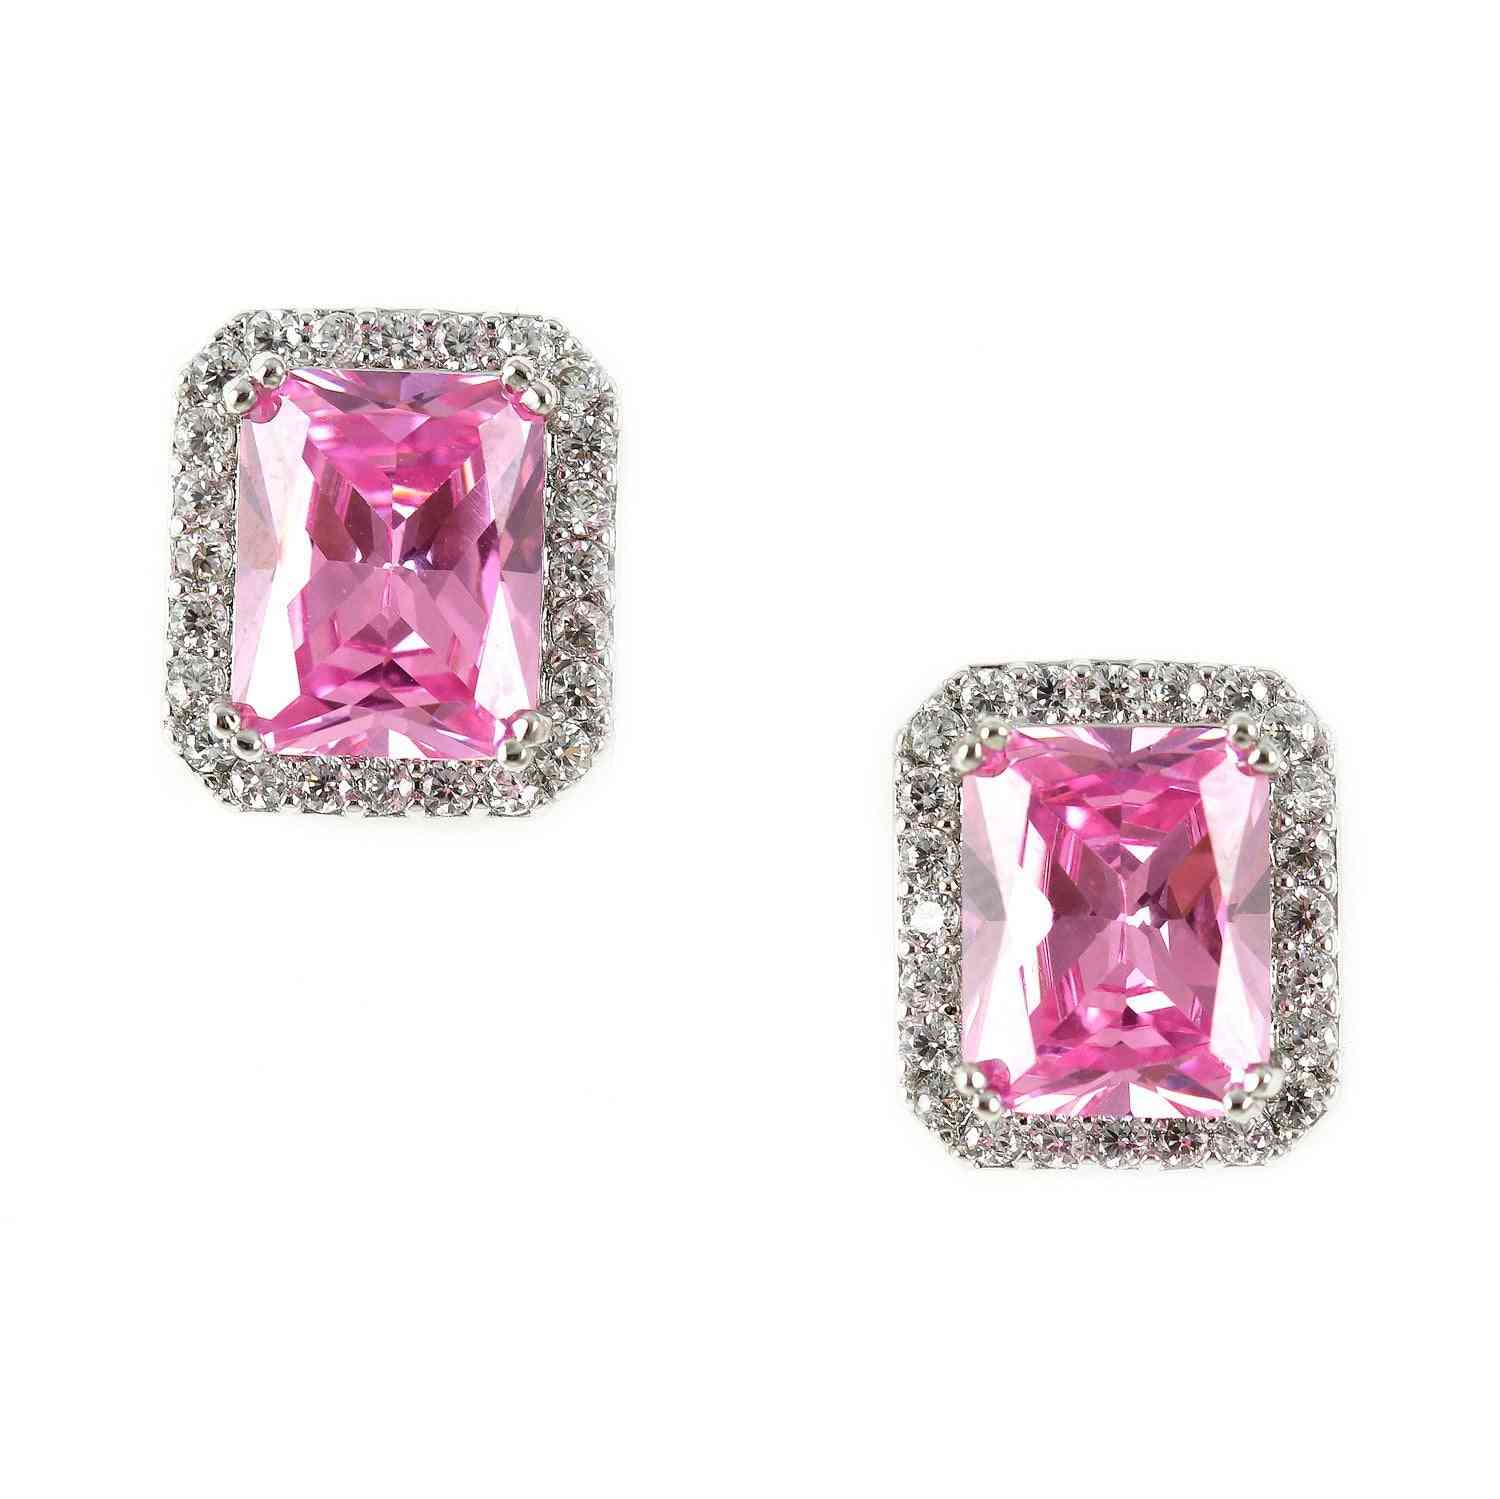 Pink Cubic Zirconia-square Cut Crystal Studs